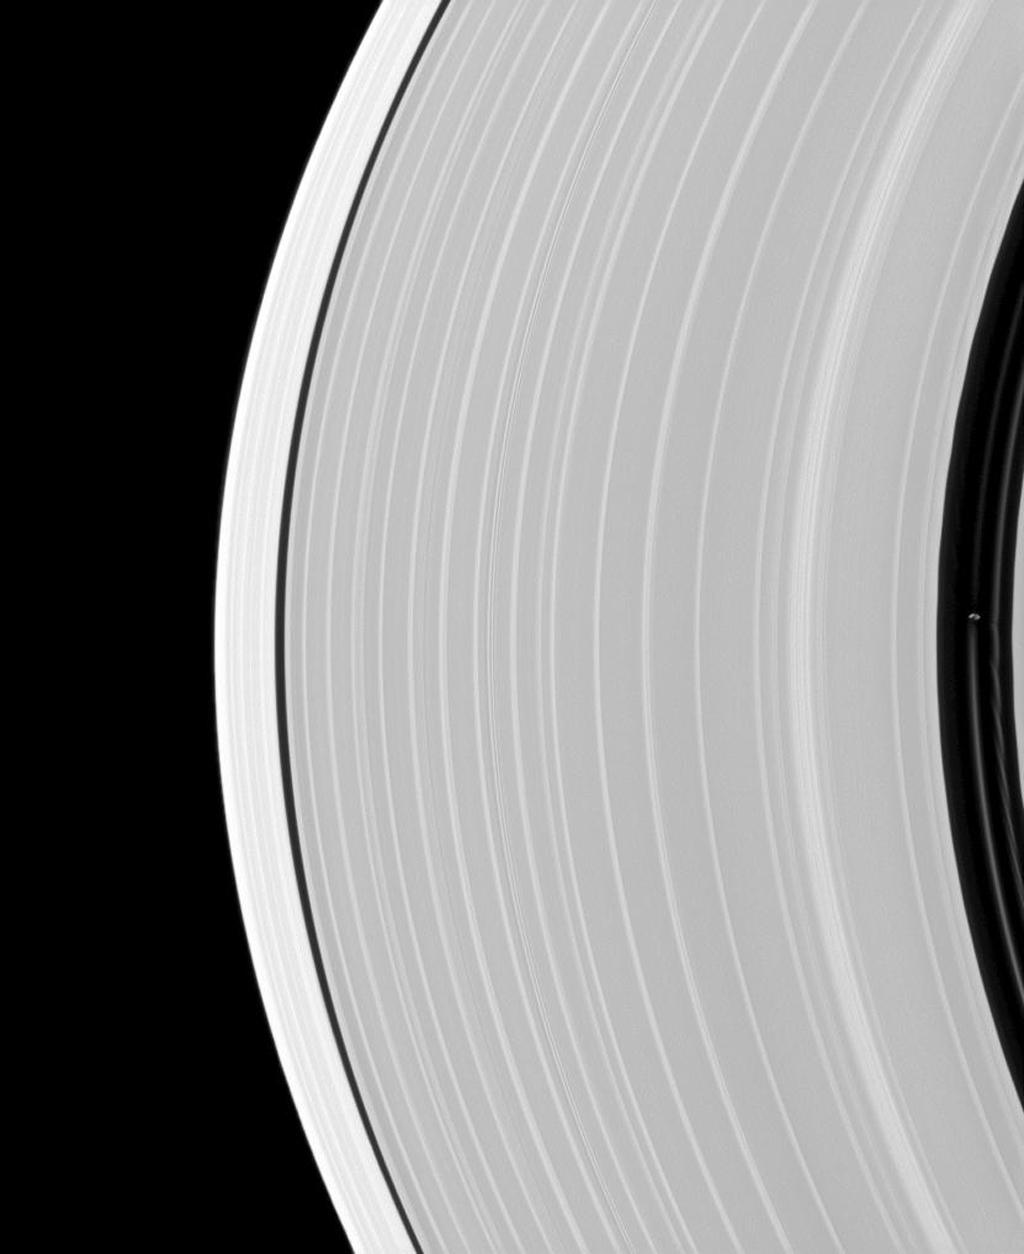 Saturn's small, ring-embedded moon Pan, on the extreme right of this NASA's Cassini spacecraft image, can be seen interacting with the ringlets that share the Encke Gap of the A ring with this moon.